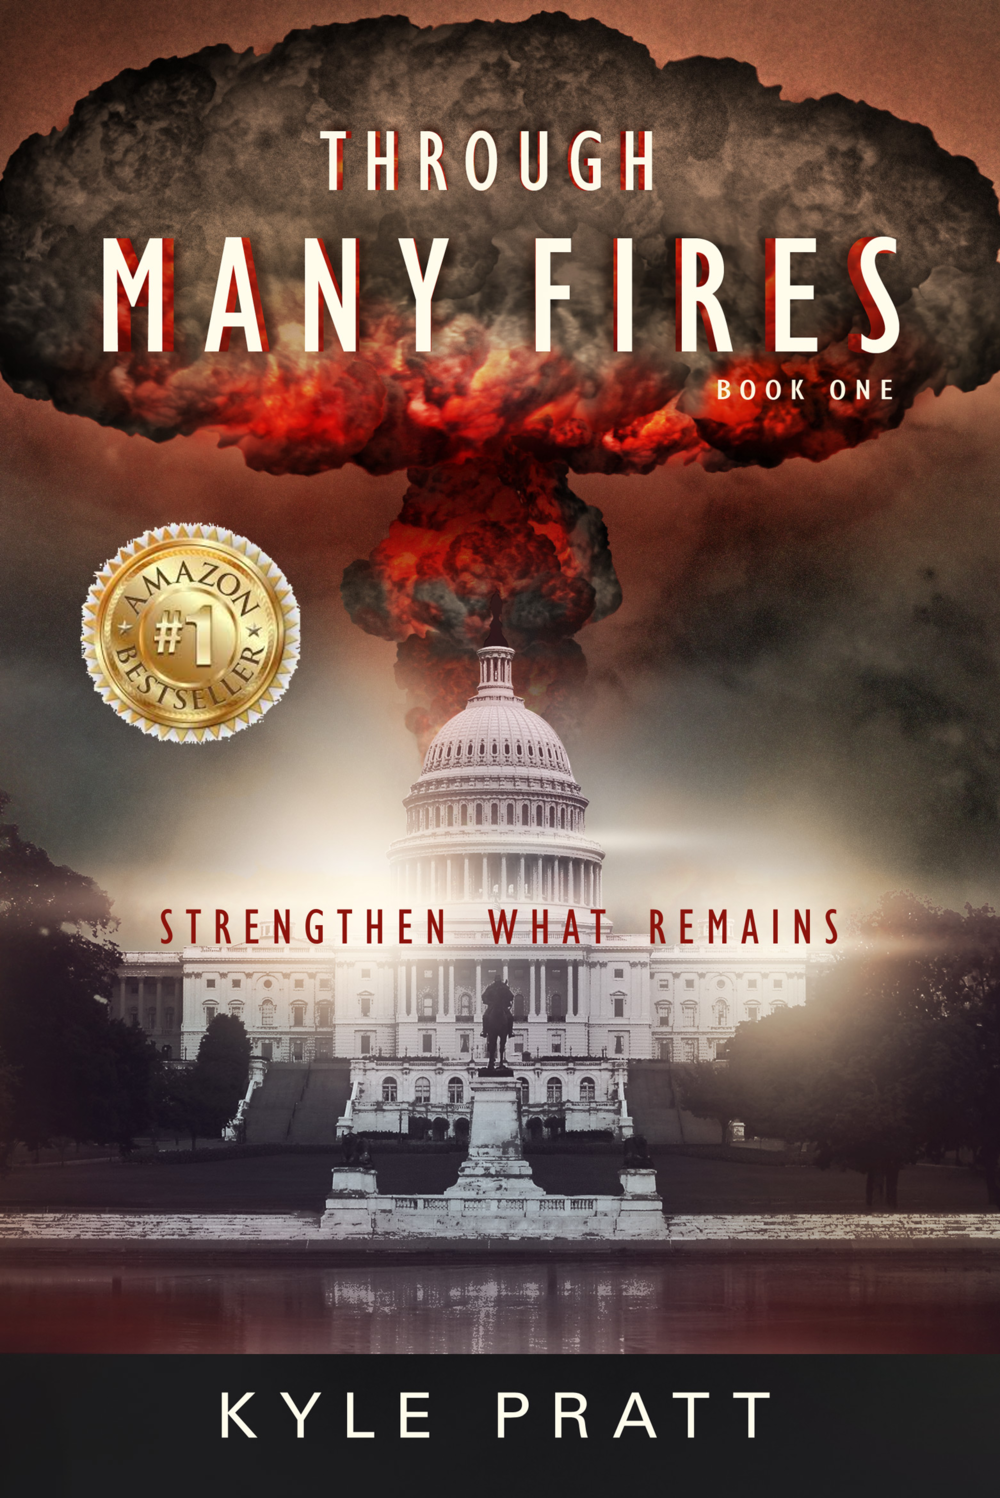 Through Many Fires    Book one in the Strengthen What Remains series.   Terrorists smuggle a nuclear bomb into Washington D.C. and detonate it during the State of the Union Address. Caden Westmore is in nearby Bethesda and watches as the mushroom cloud grows over the capital. The next day, as Caden drives away from the still burning city, he learns another city has been destroyed and then another. Panic ensues and society unravels.